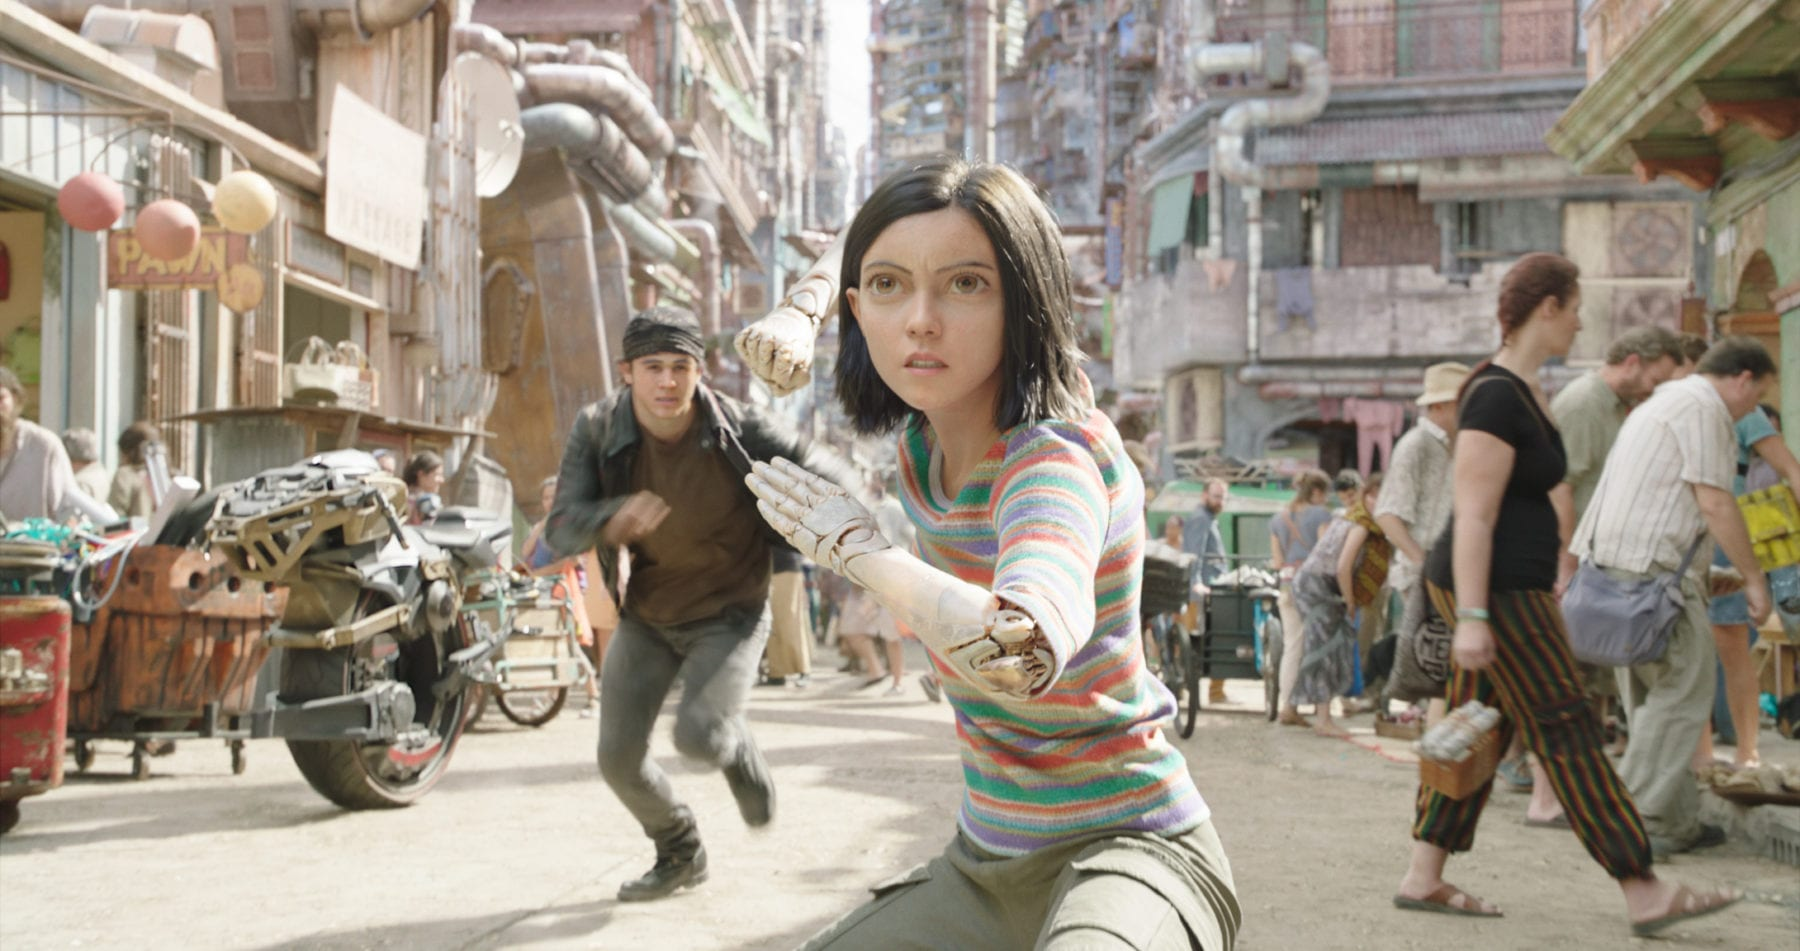 2019 Movie Photography Art: Movie Review - Alita: Battle Angel (2019)